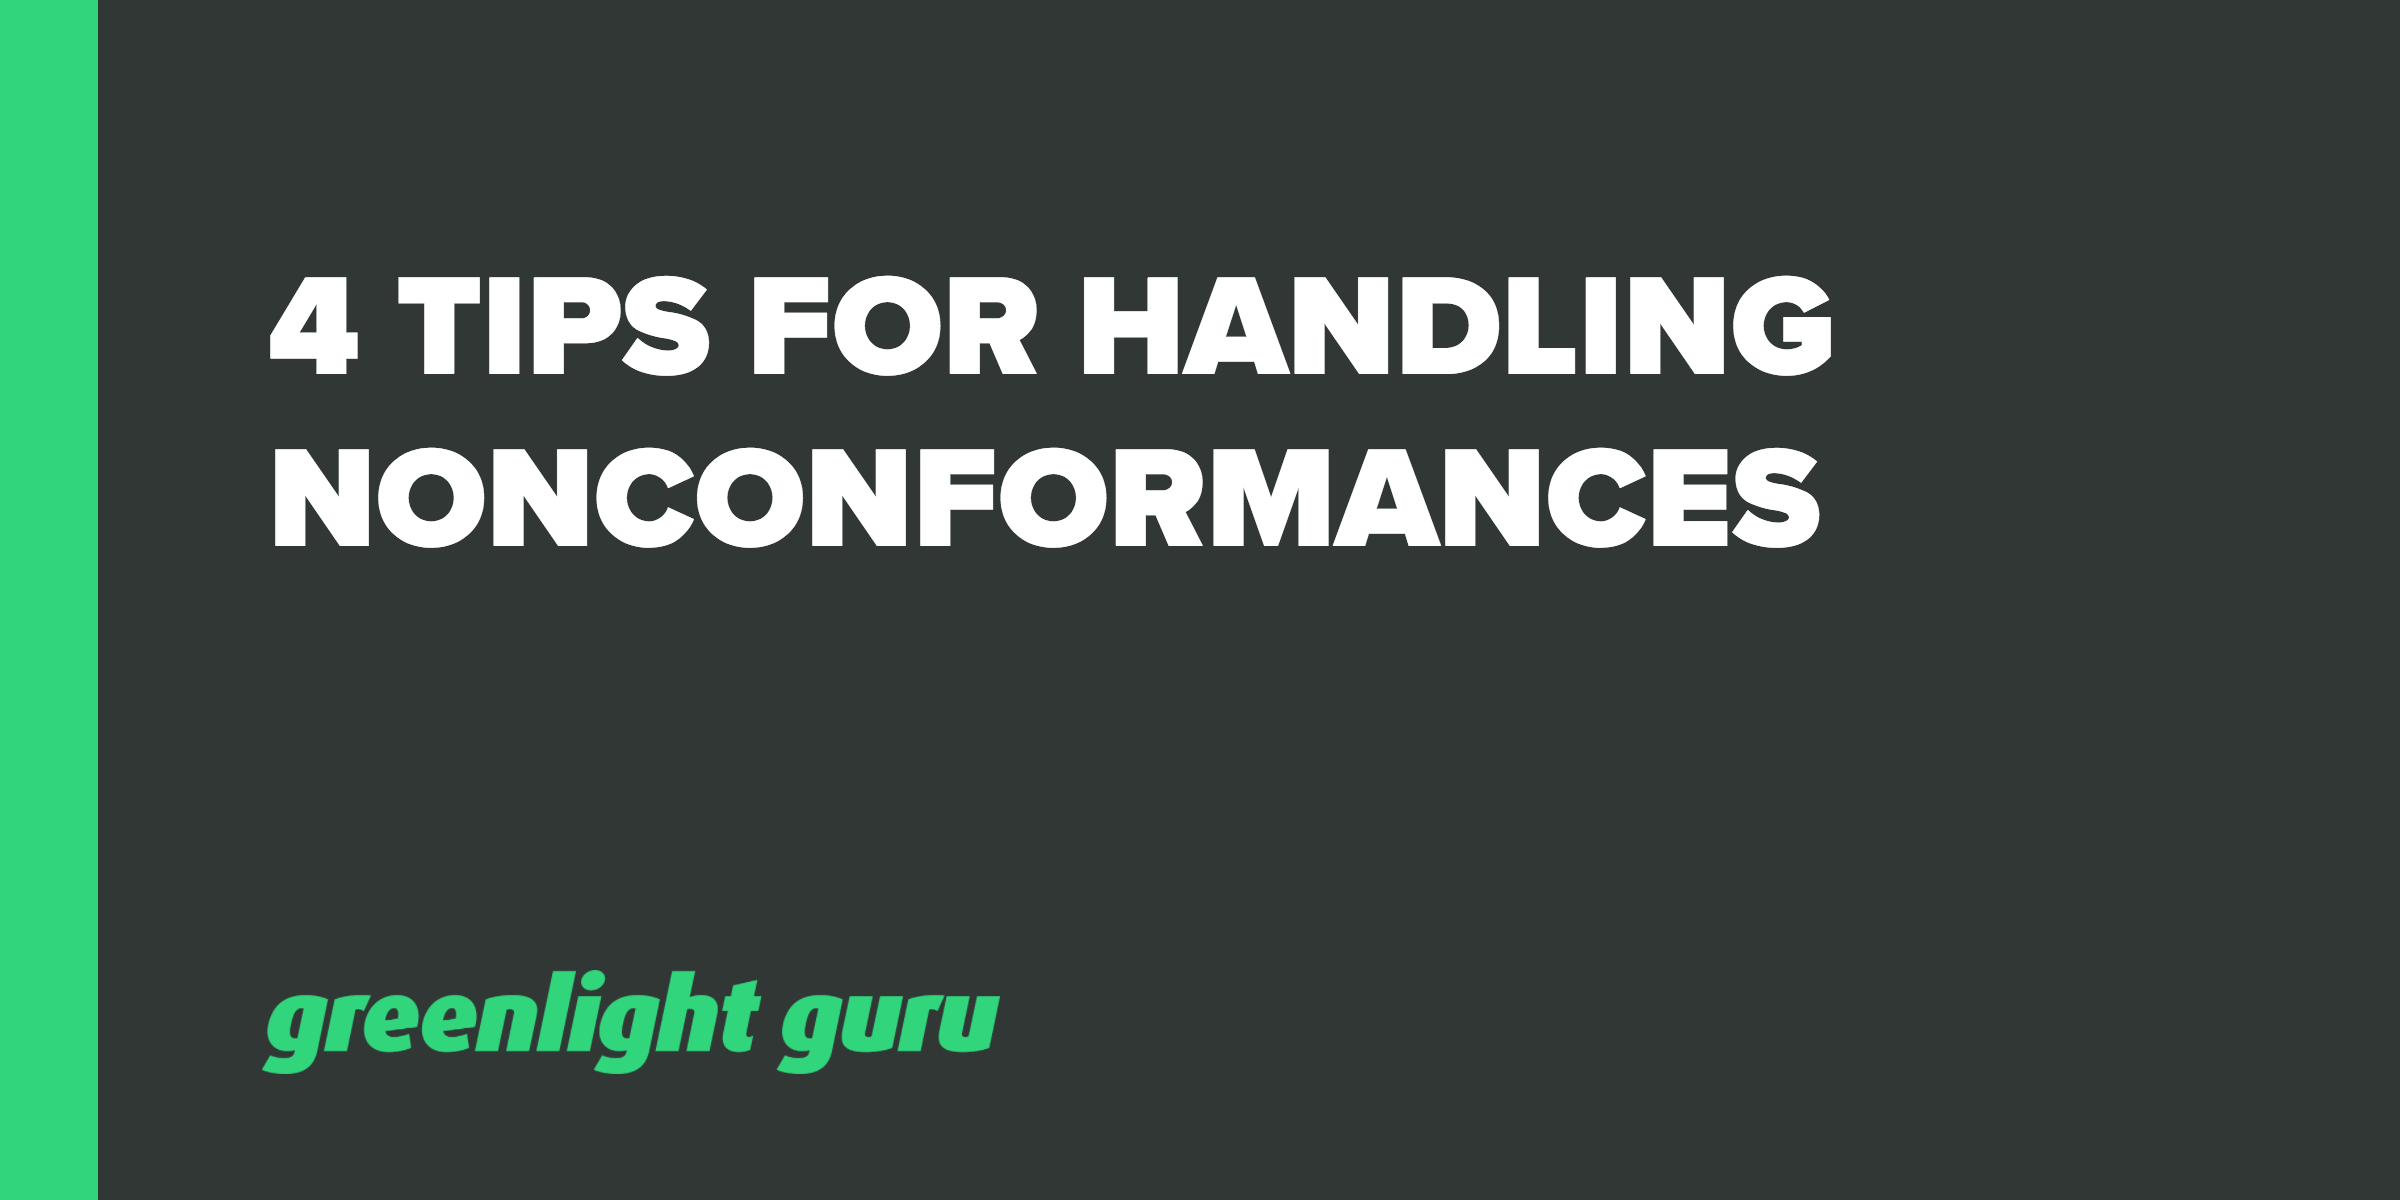 4 Tips for Handling Nonconformances - Featured Image